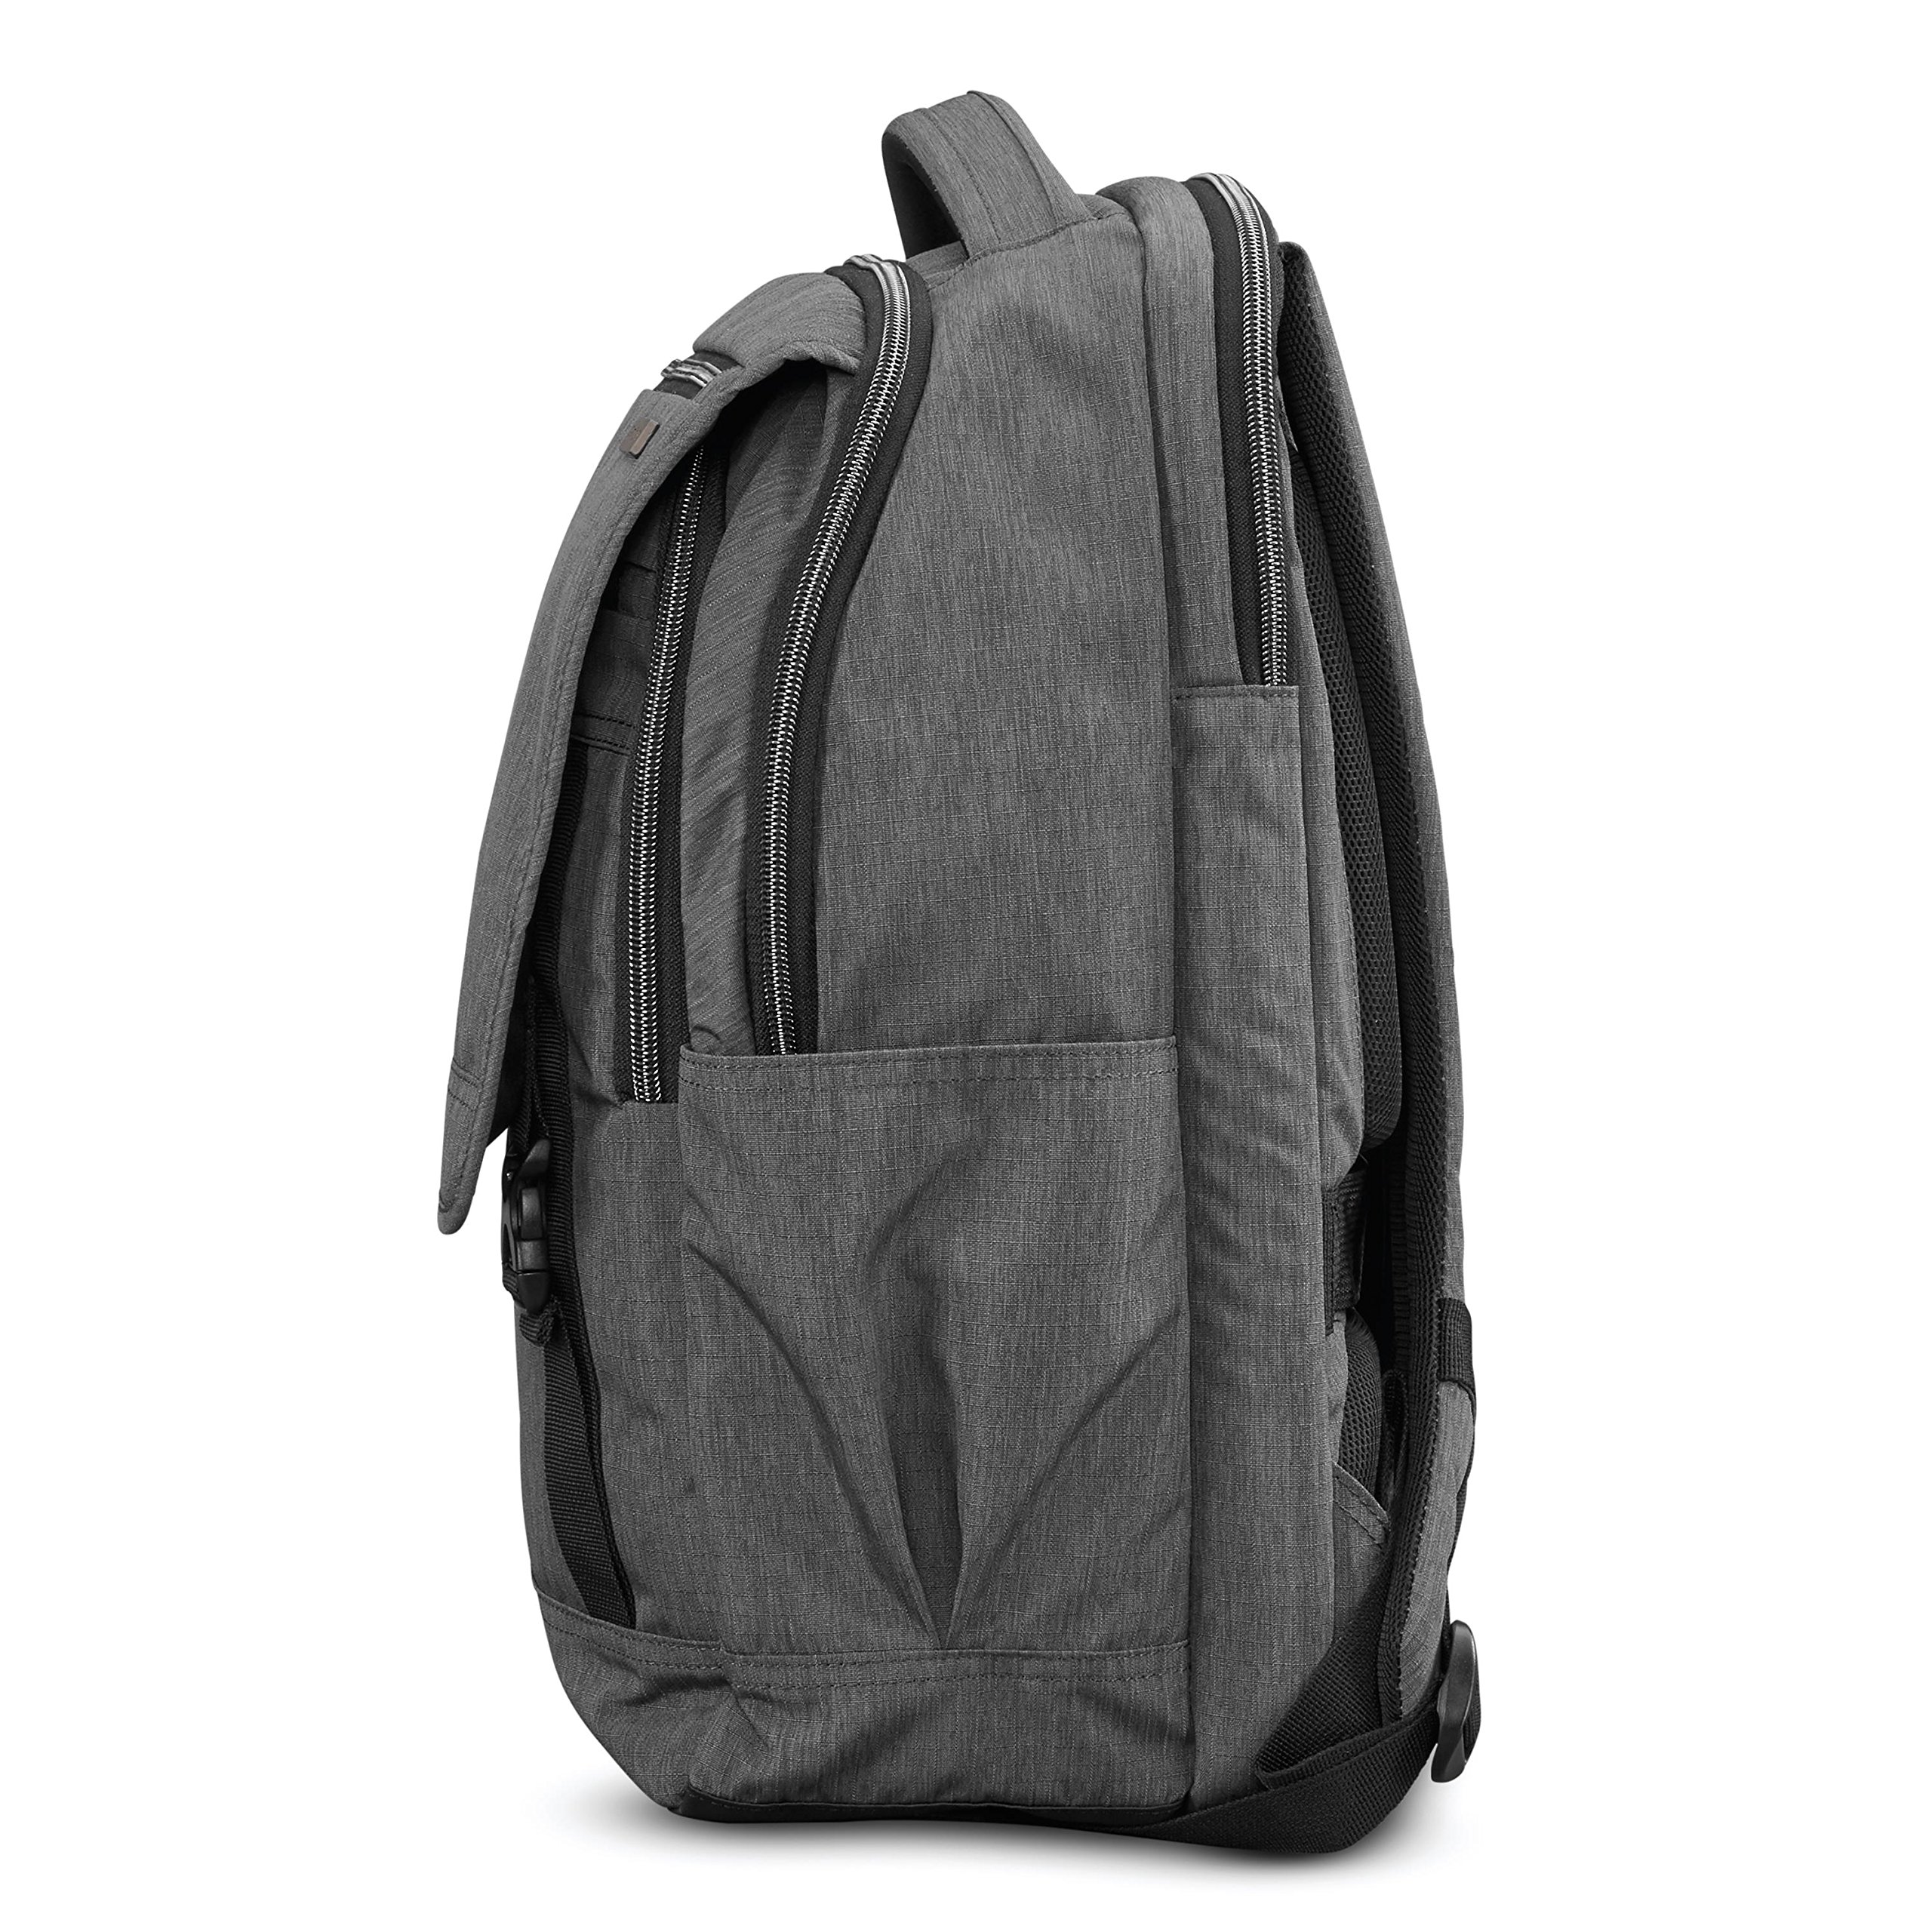 Samsonite Modern Utility Paracycle Backpack Laptop, Charcoal Heather, One Size by Samsonite (Image #3)